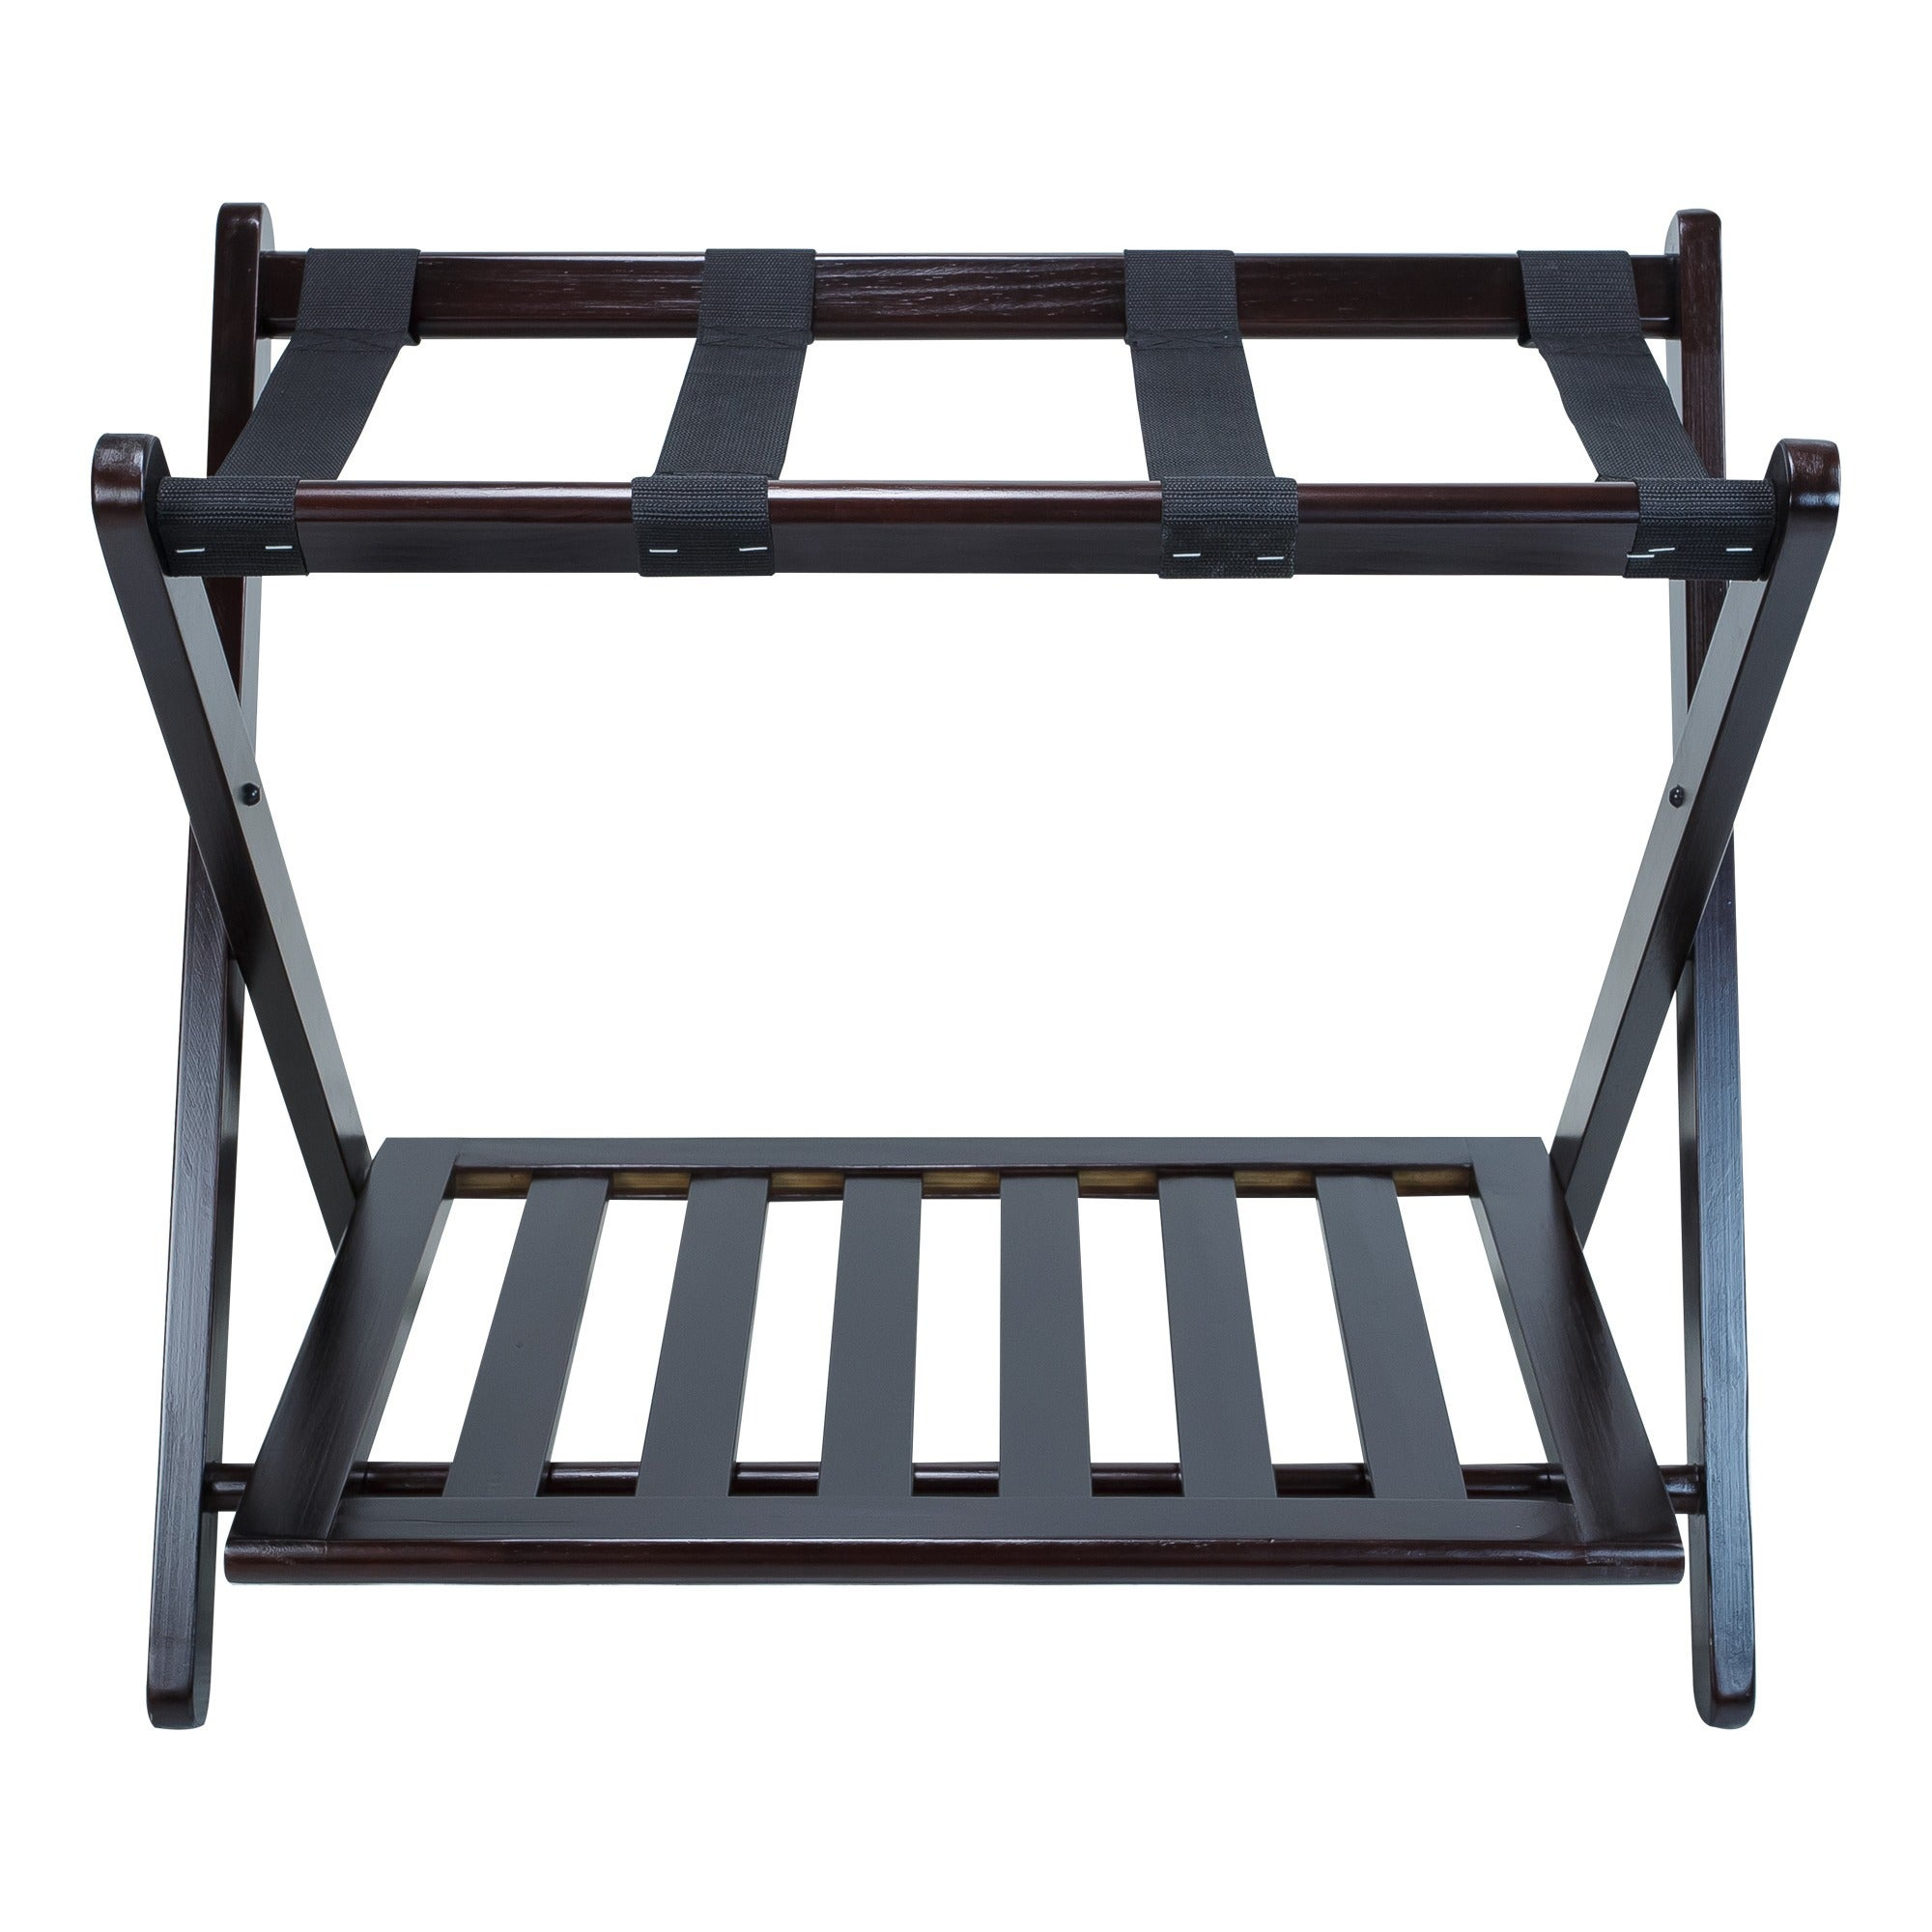 Exceptionnel Shop Hotel Style Luggage Rack With Shelf   Free Shipping On Orders Over $45    Overstock.com   9762587